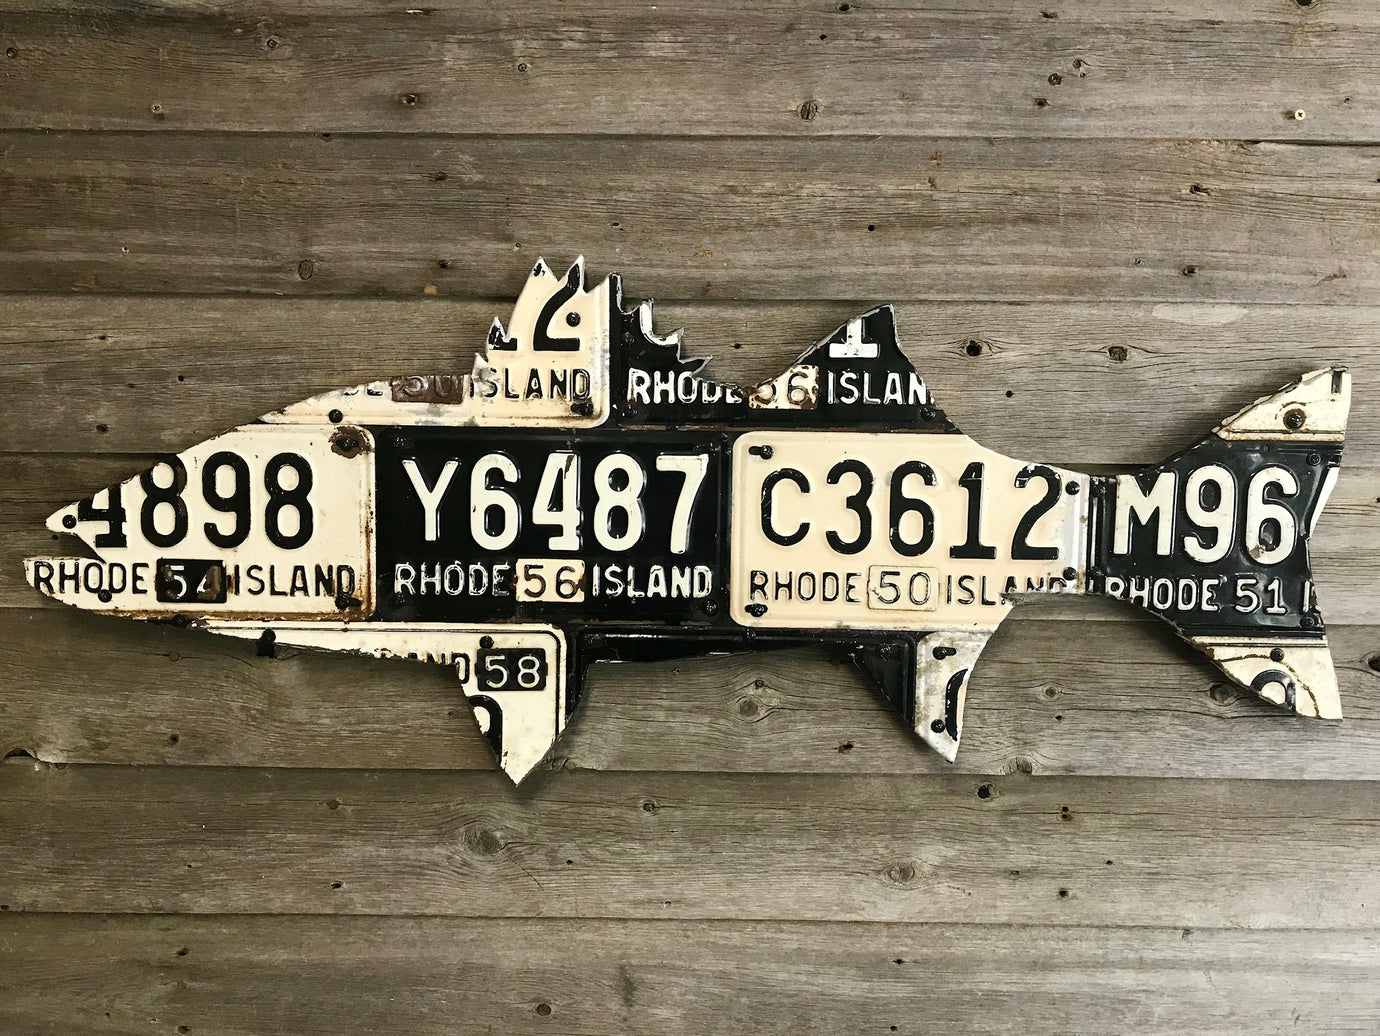 Rhode Island Striped Bass License Plate Art